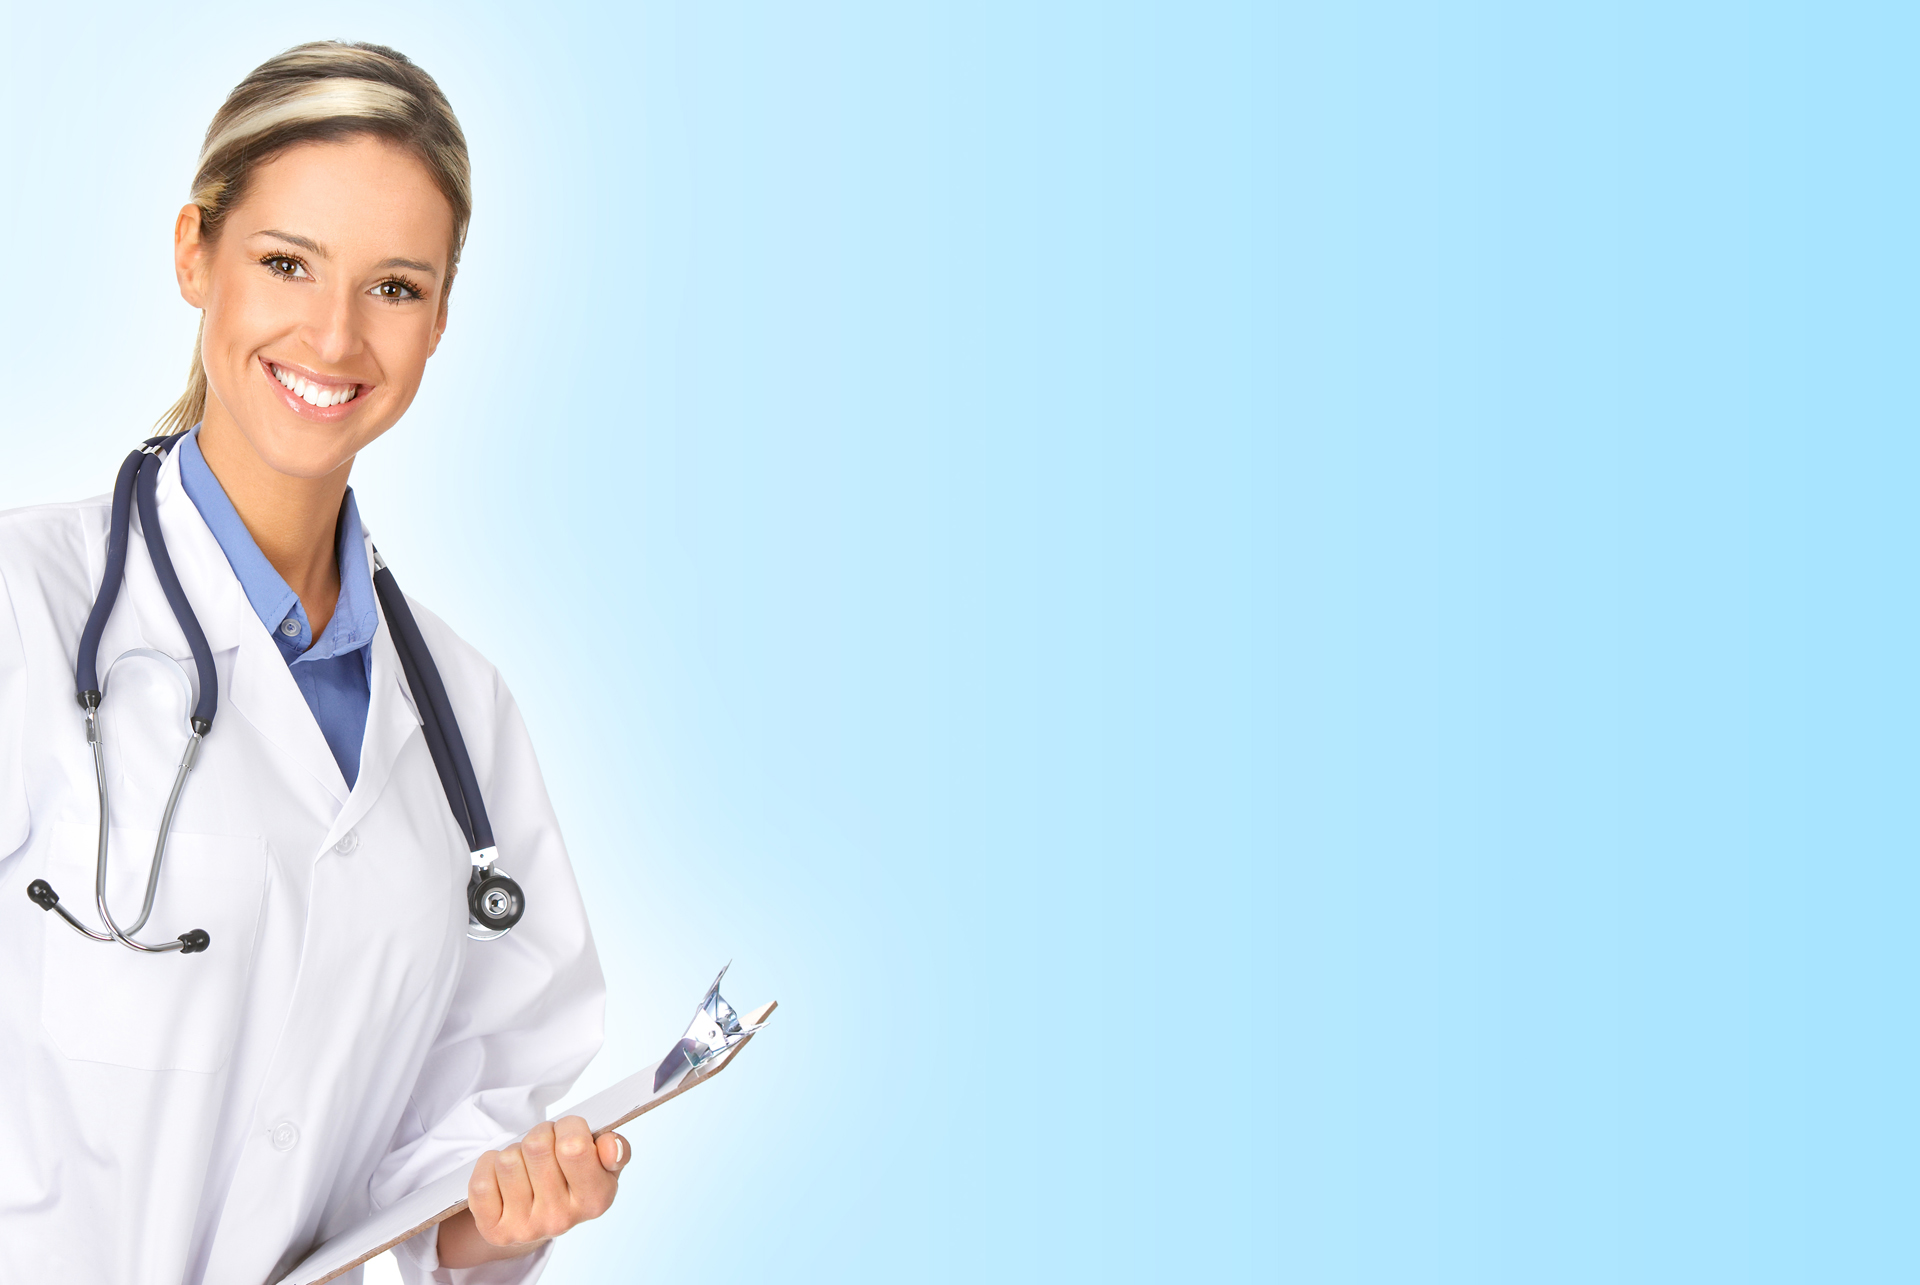 Medical PowerPoint BackgroundsWallpapers Download   PPT Backgrounds 1920x1285